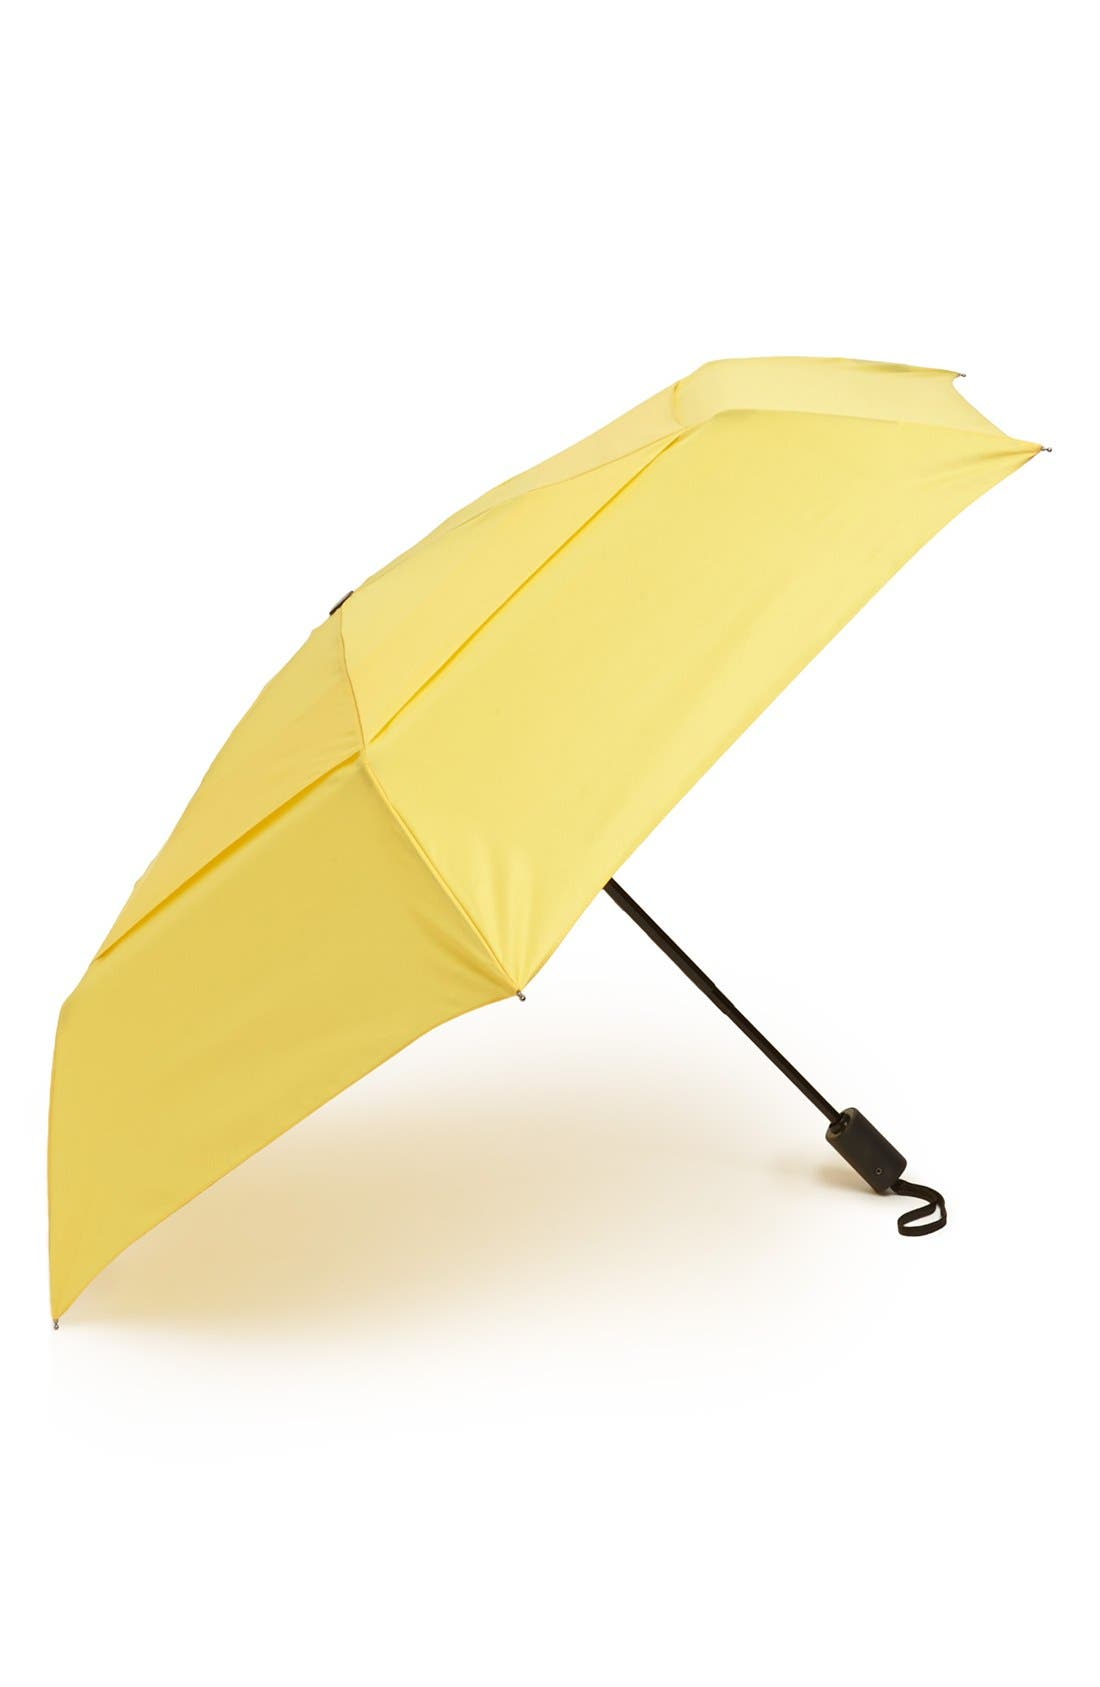 'WINDPRO' AUTO OPEN & CLOSE UMBRELLA - YELLOW